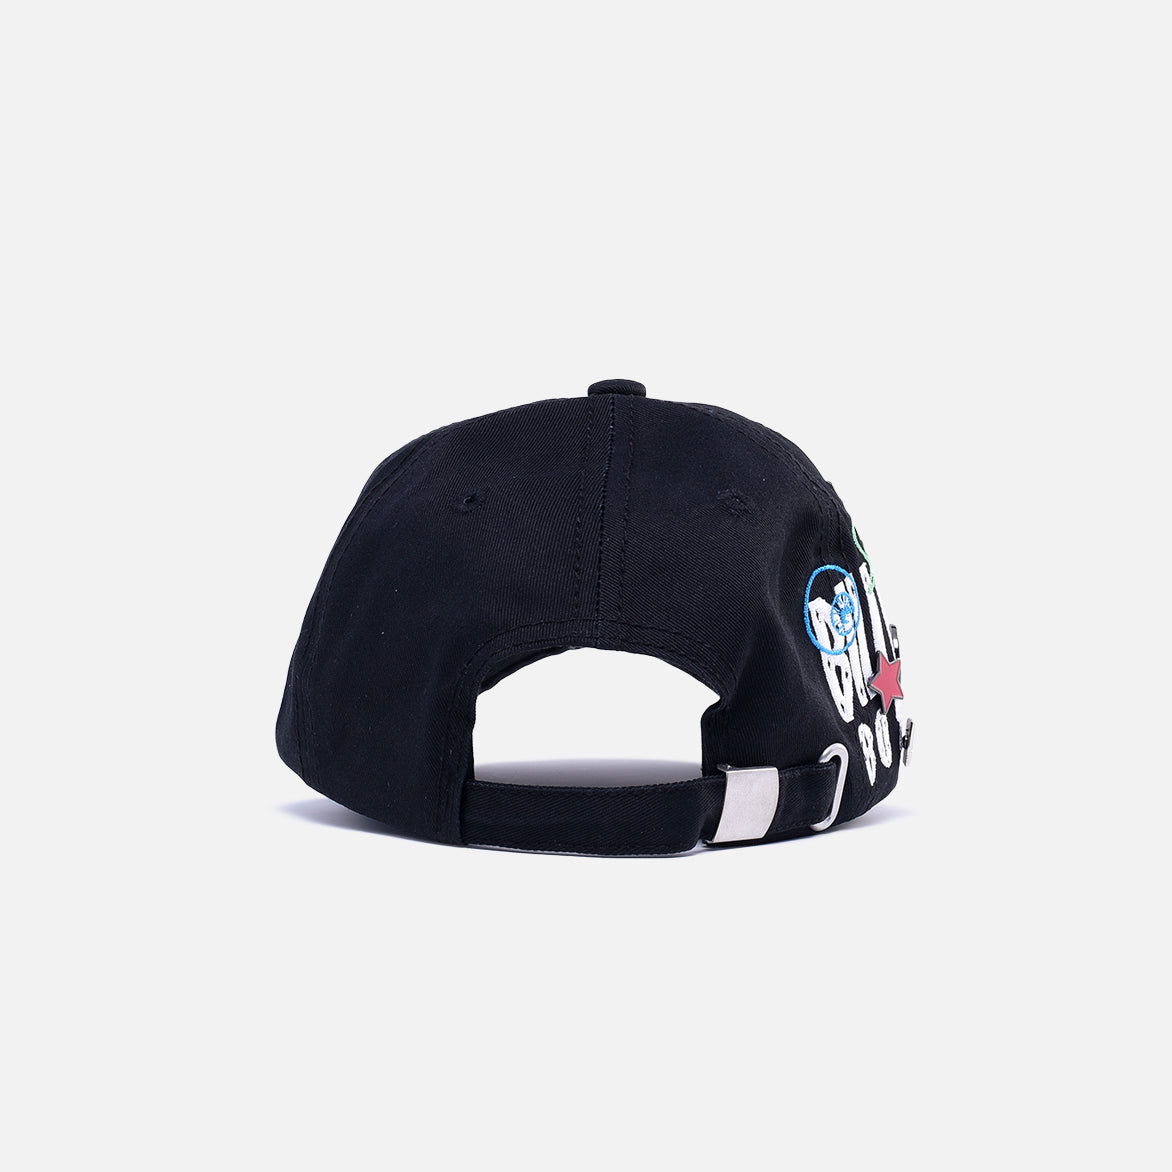 STRAIGHT LOGO HAT - BLACK